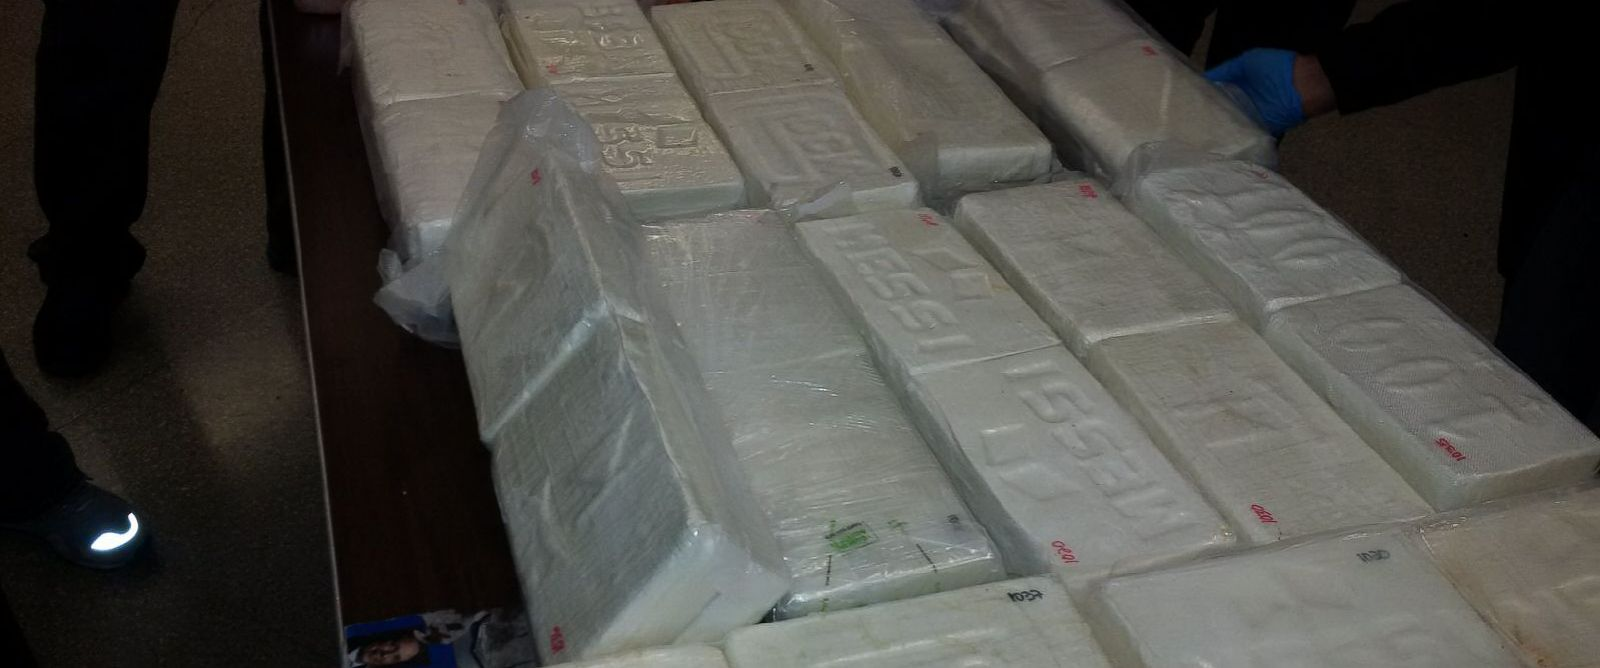 PHOTO: New York City police seized 136 pounds of cocaine worth up to $3 million and arrested two suspected narcotics traffickers, officials said, Dec. 19, 2015.